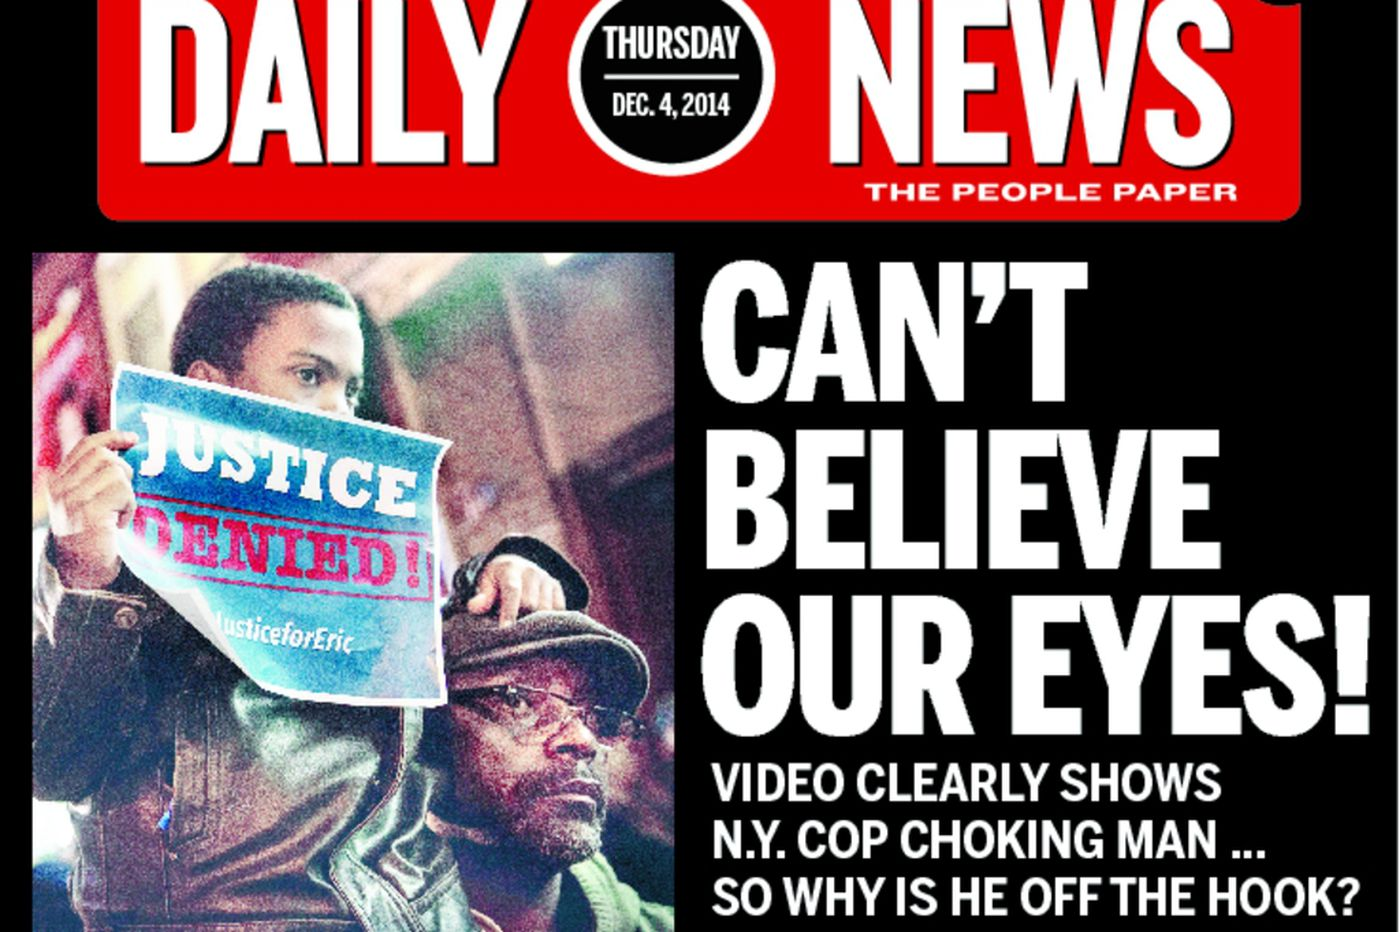 Dailynews Monthly Covers 12/04/14